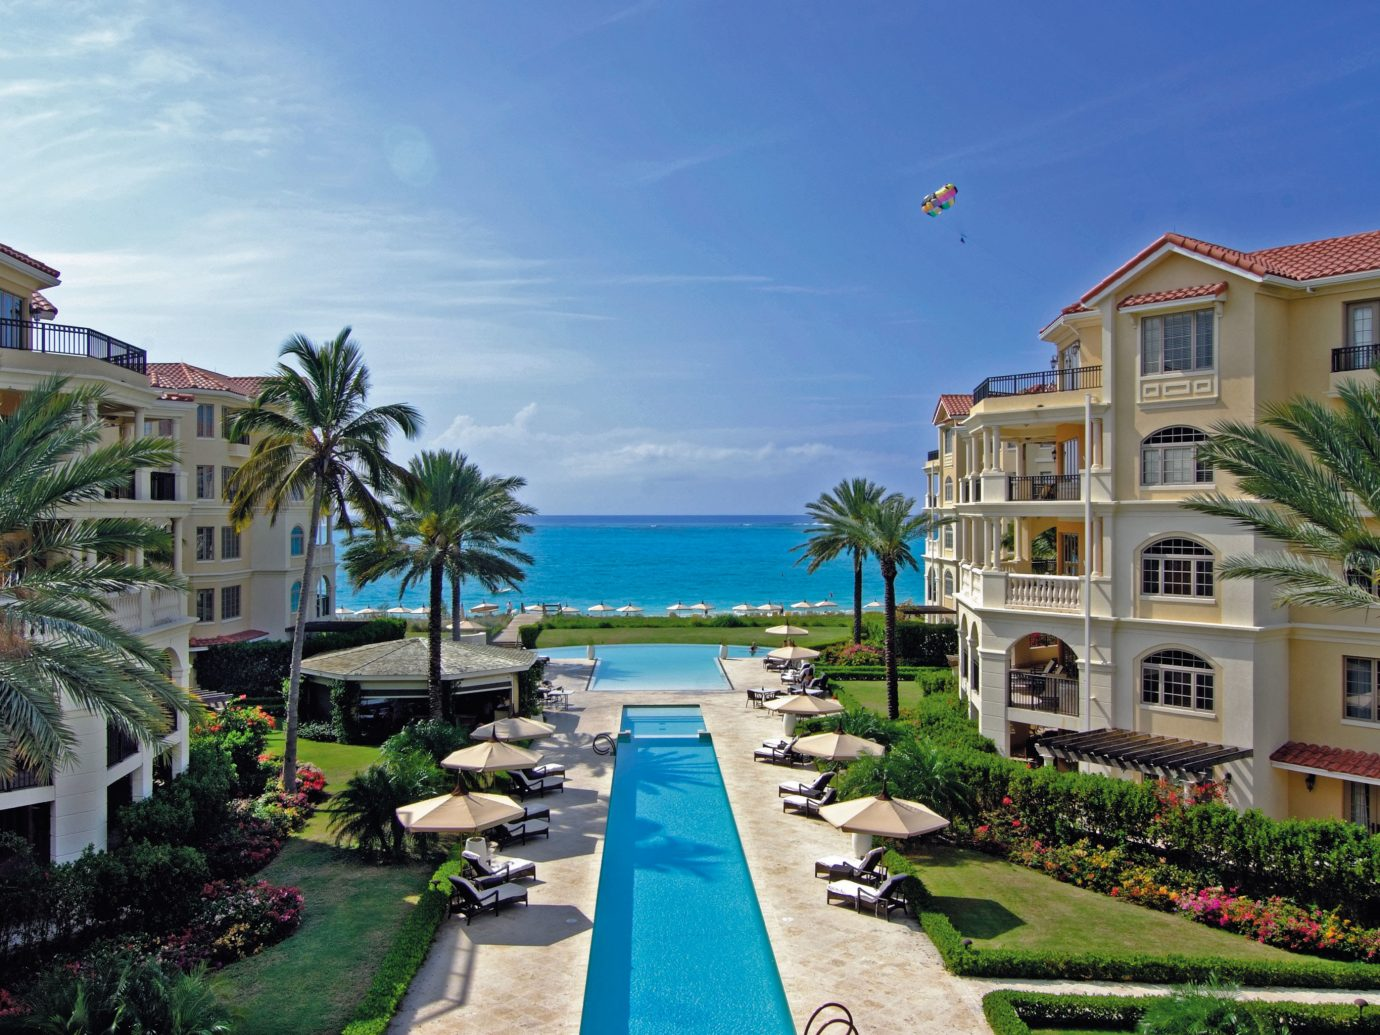 Beachfront Buildings Grounds Hotels Pool Resort Scenic views Trip Ideas outdoor sky house property Town vacation estate condominium residential area neighbourhood lawn walkway home Village plant caribbean Beach real estate bay marina Sea Garden palm